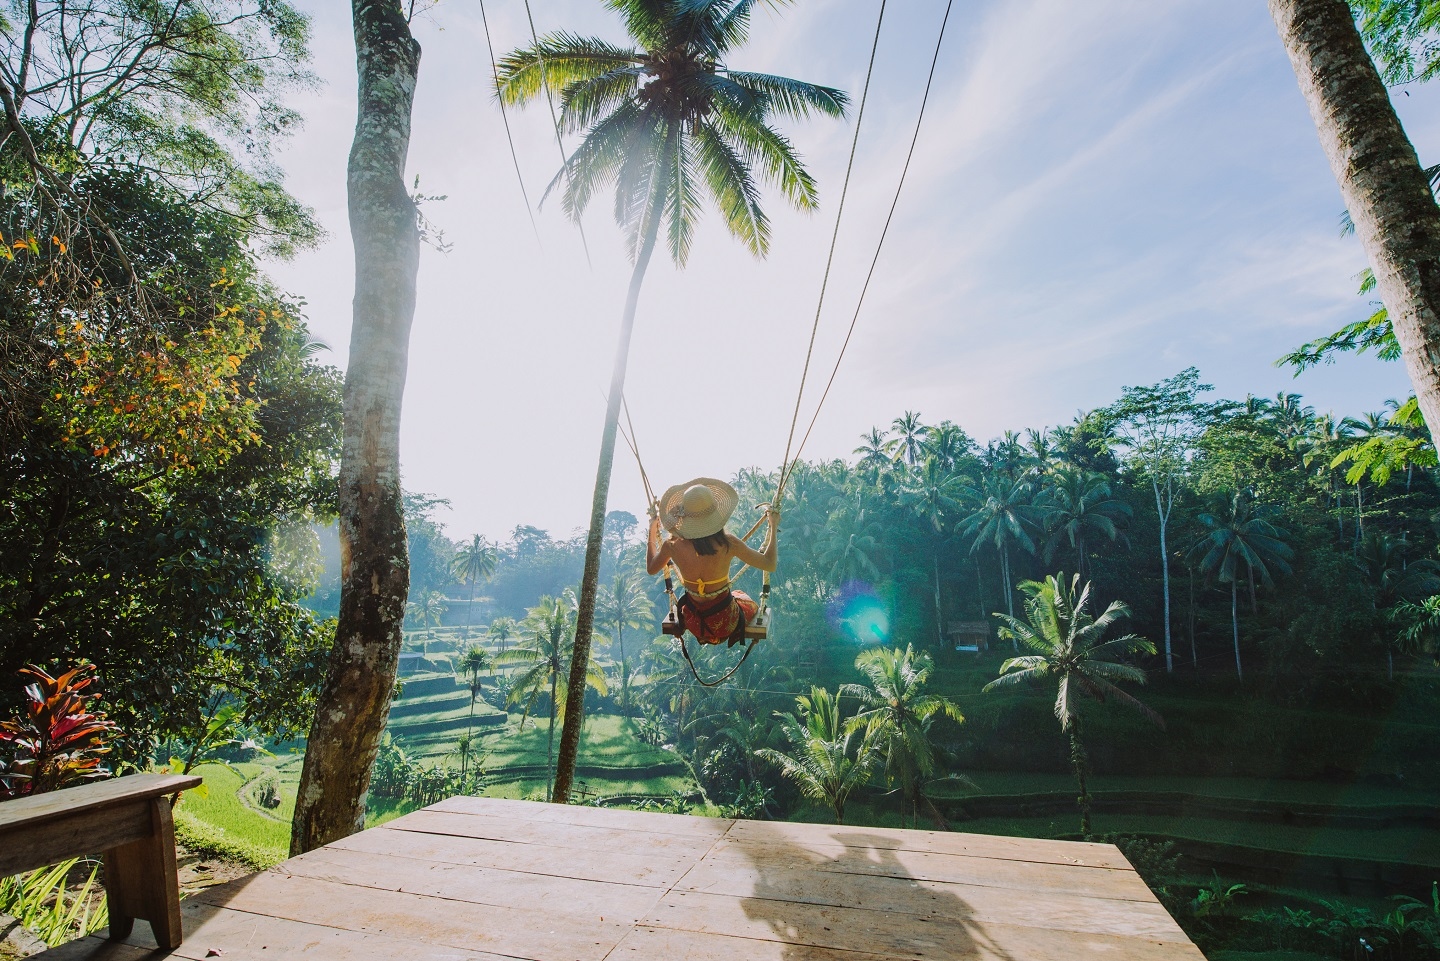 http://Beautiful%20Girl%20Visiting%20The%20Bali%20Rice%20Fields%20In%20Tegalalang,%20Ubud.%20Using%20A%20Swing%20Over%20The%20Jungle.%20Concept%20About%20People,%20Wanderlust%20Traveling%20And%20Tourism%20Lifestyle